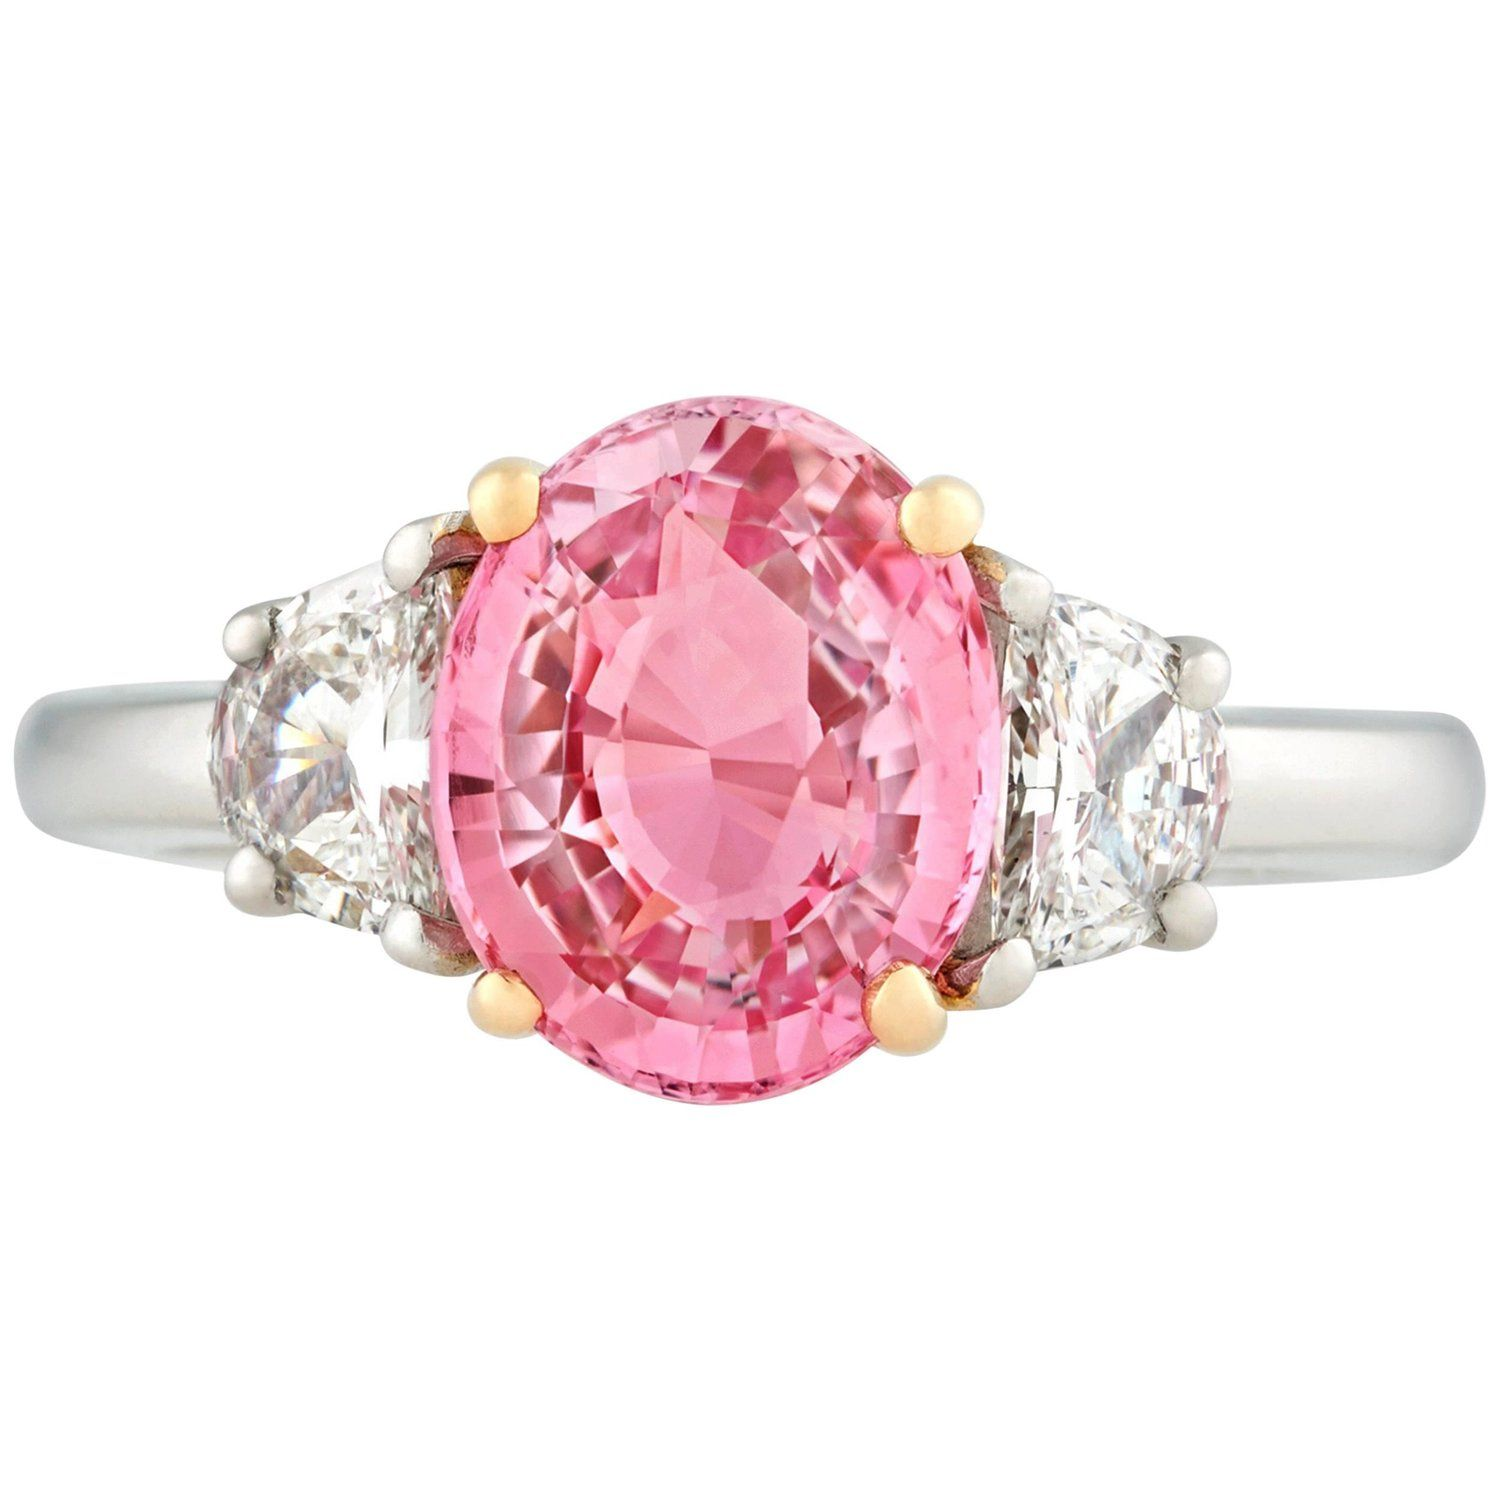 Padparadscha Sapphire Ring, 3.07 Carat | Sapphire, Ring and Gemstone